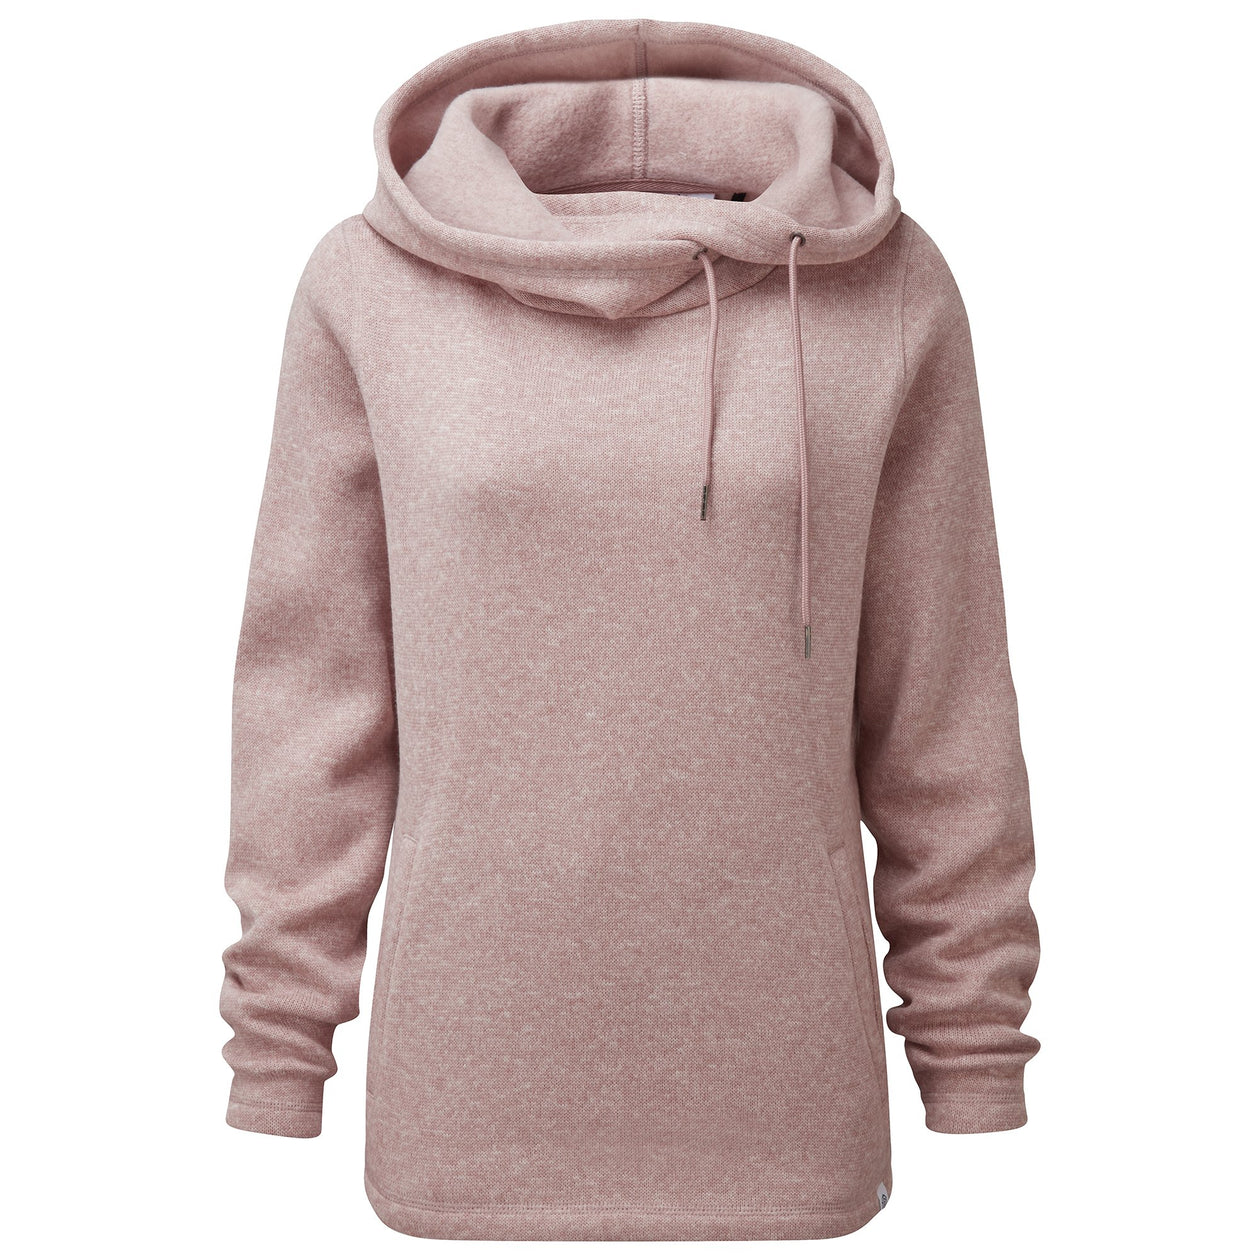 Acer Womens Knitlook Fleece Hoody - Faded Pink image 8